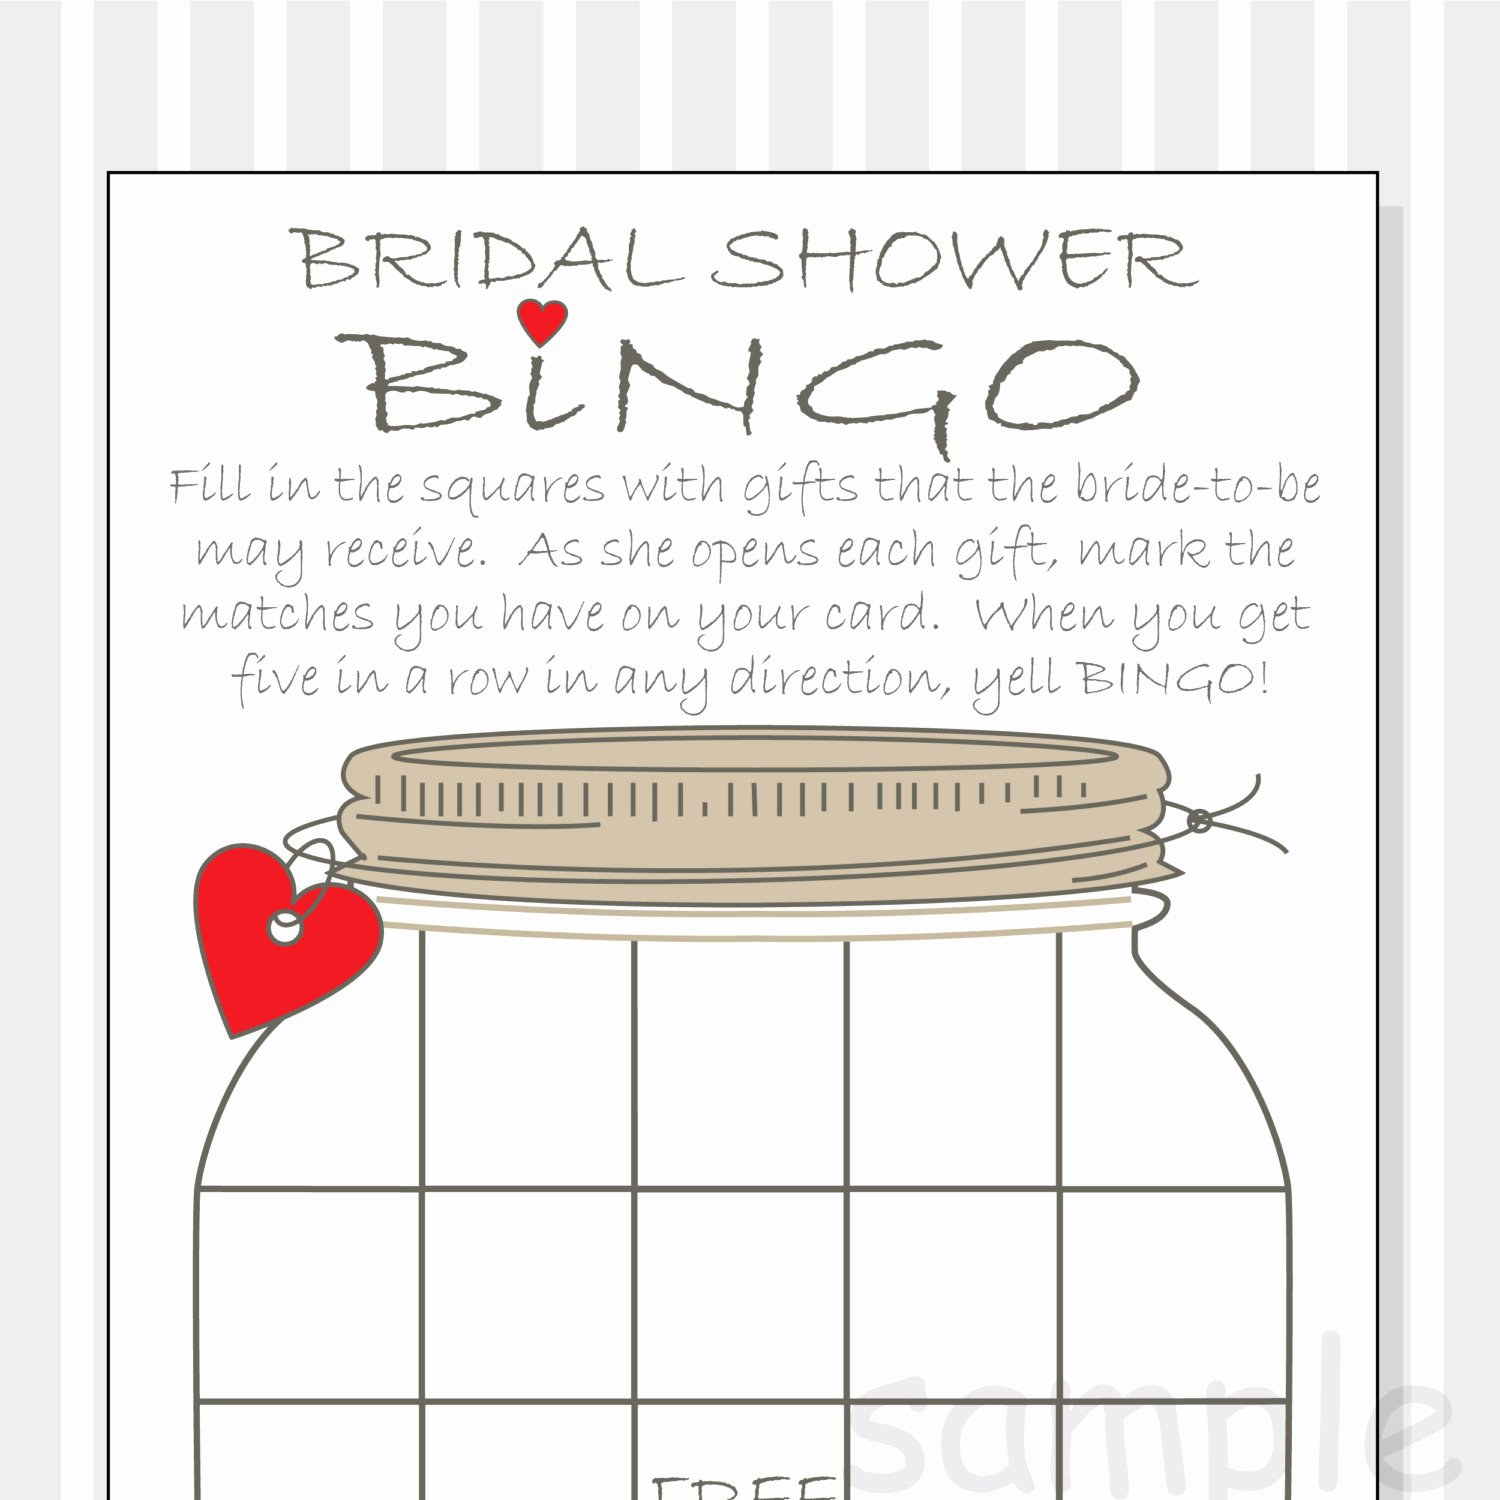 Bridal Shower Bingo Template Inspirational Bridal Shower Bingo Printable Cards Gift Bingo Rustic